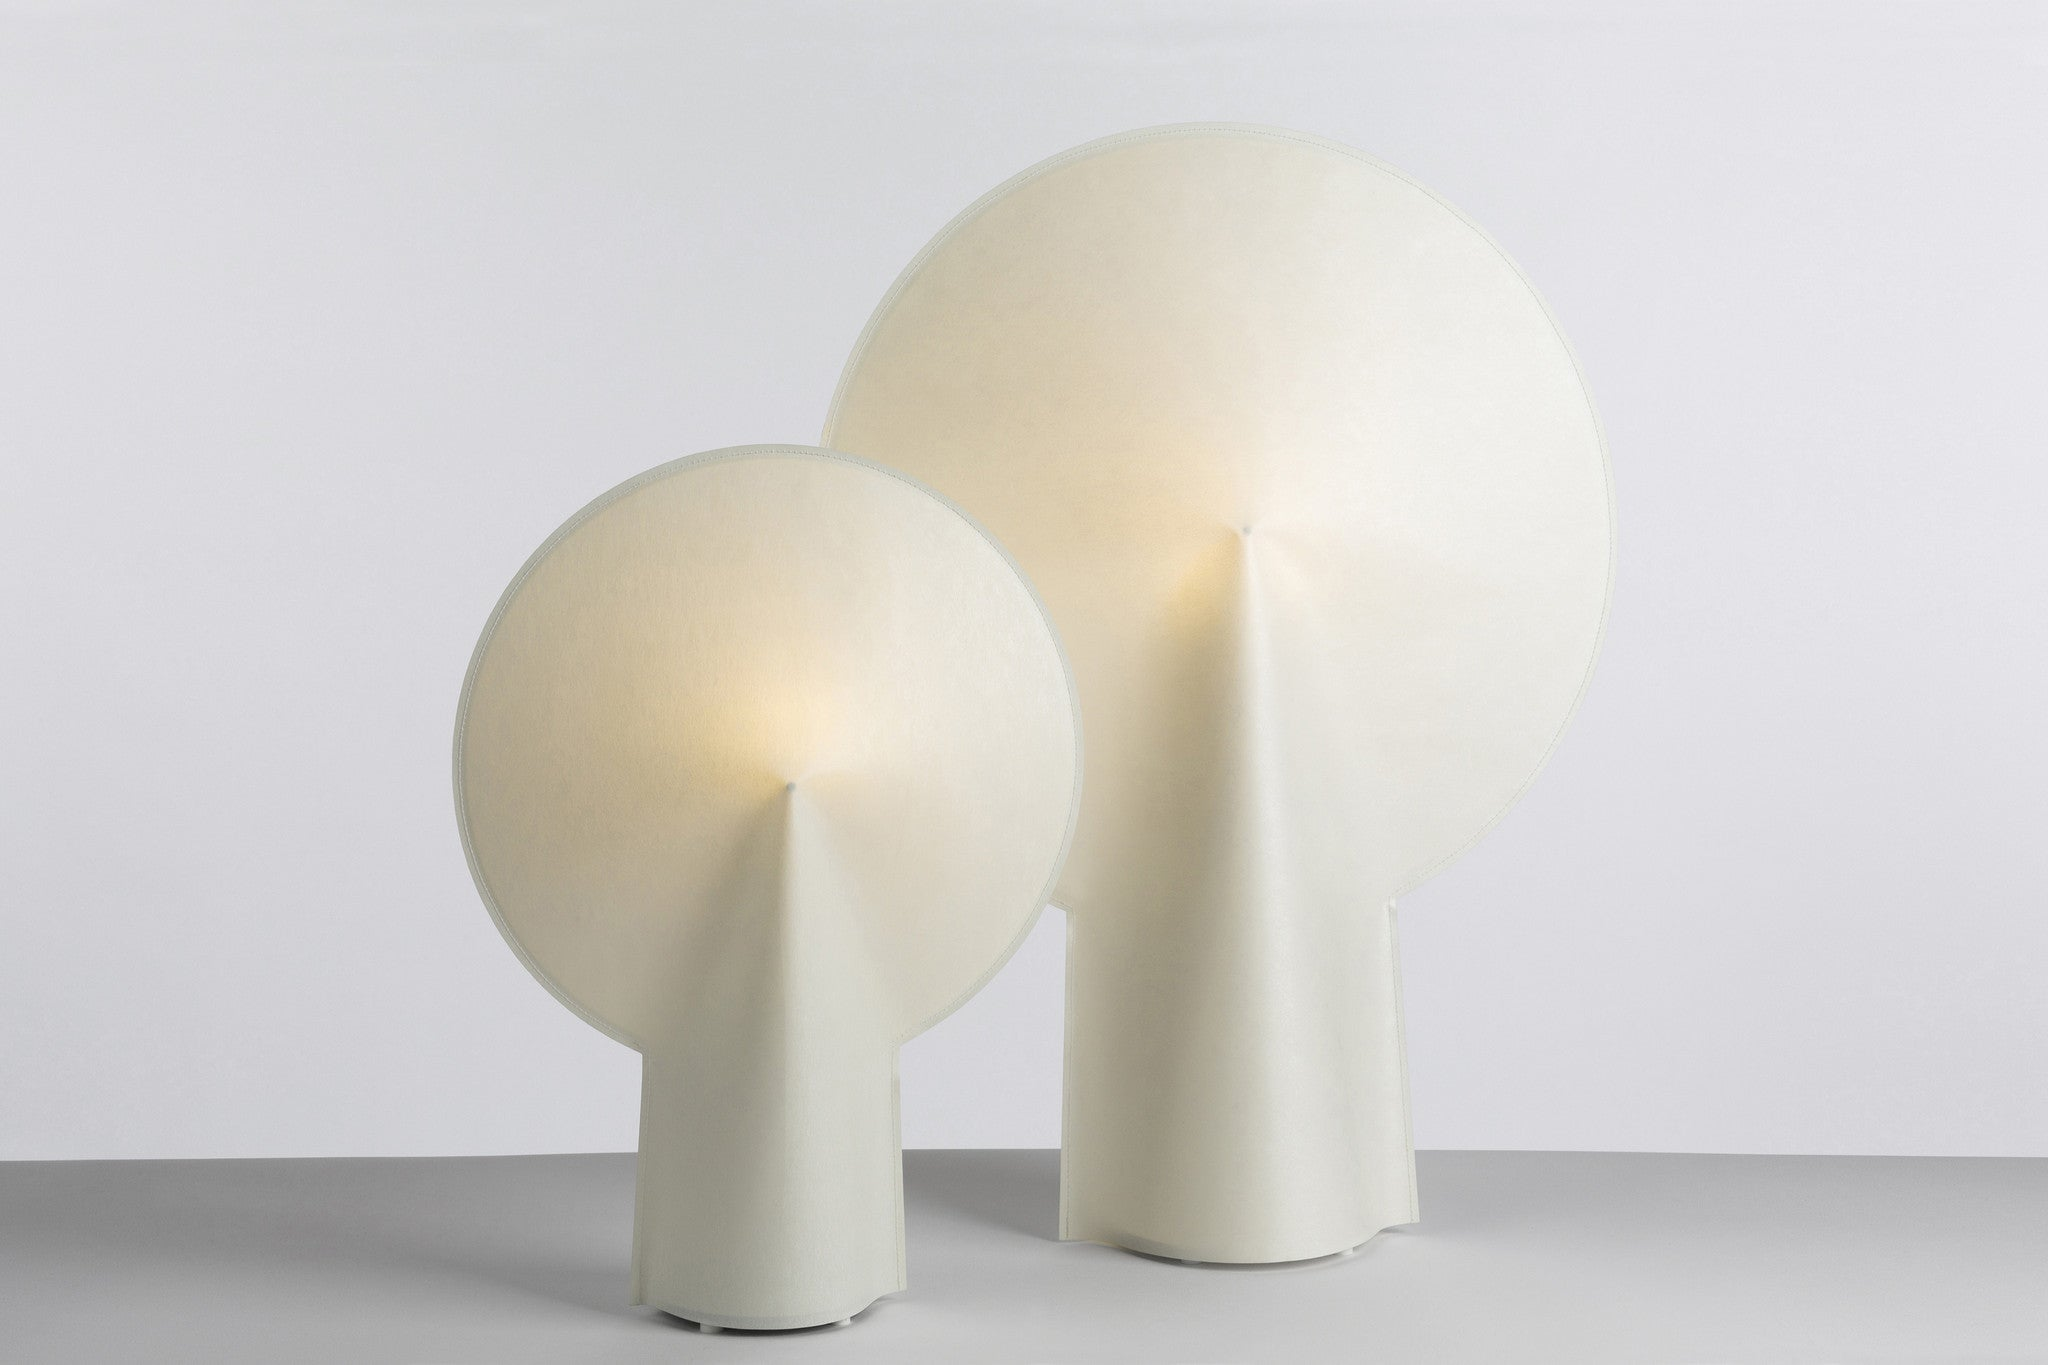 Lampa Pion Light - HAY | Designzoo